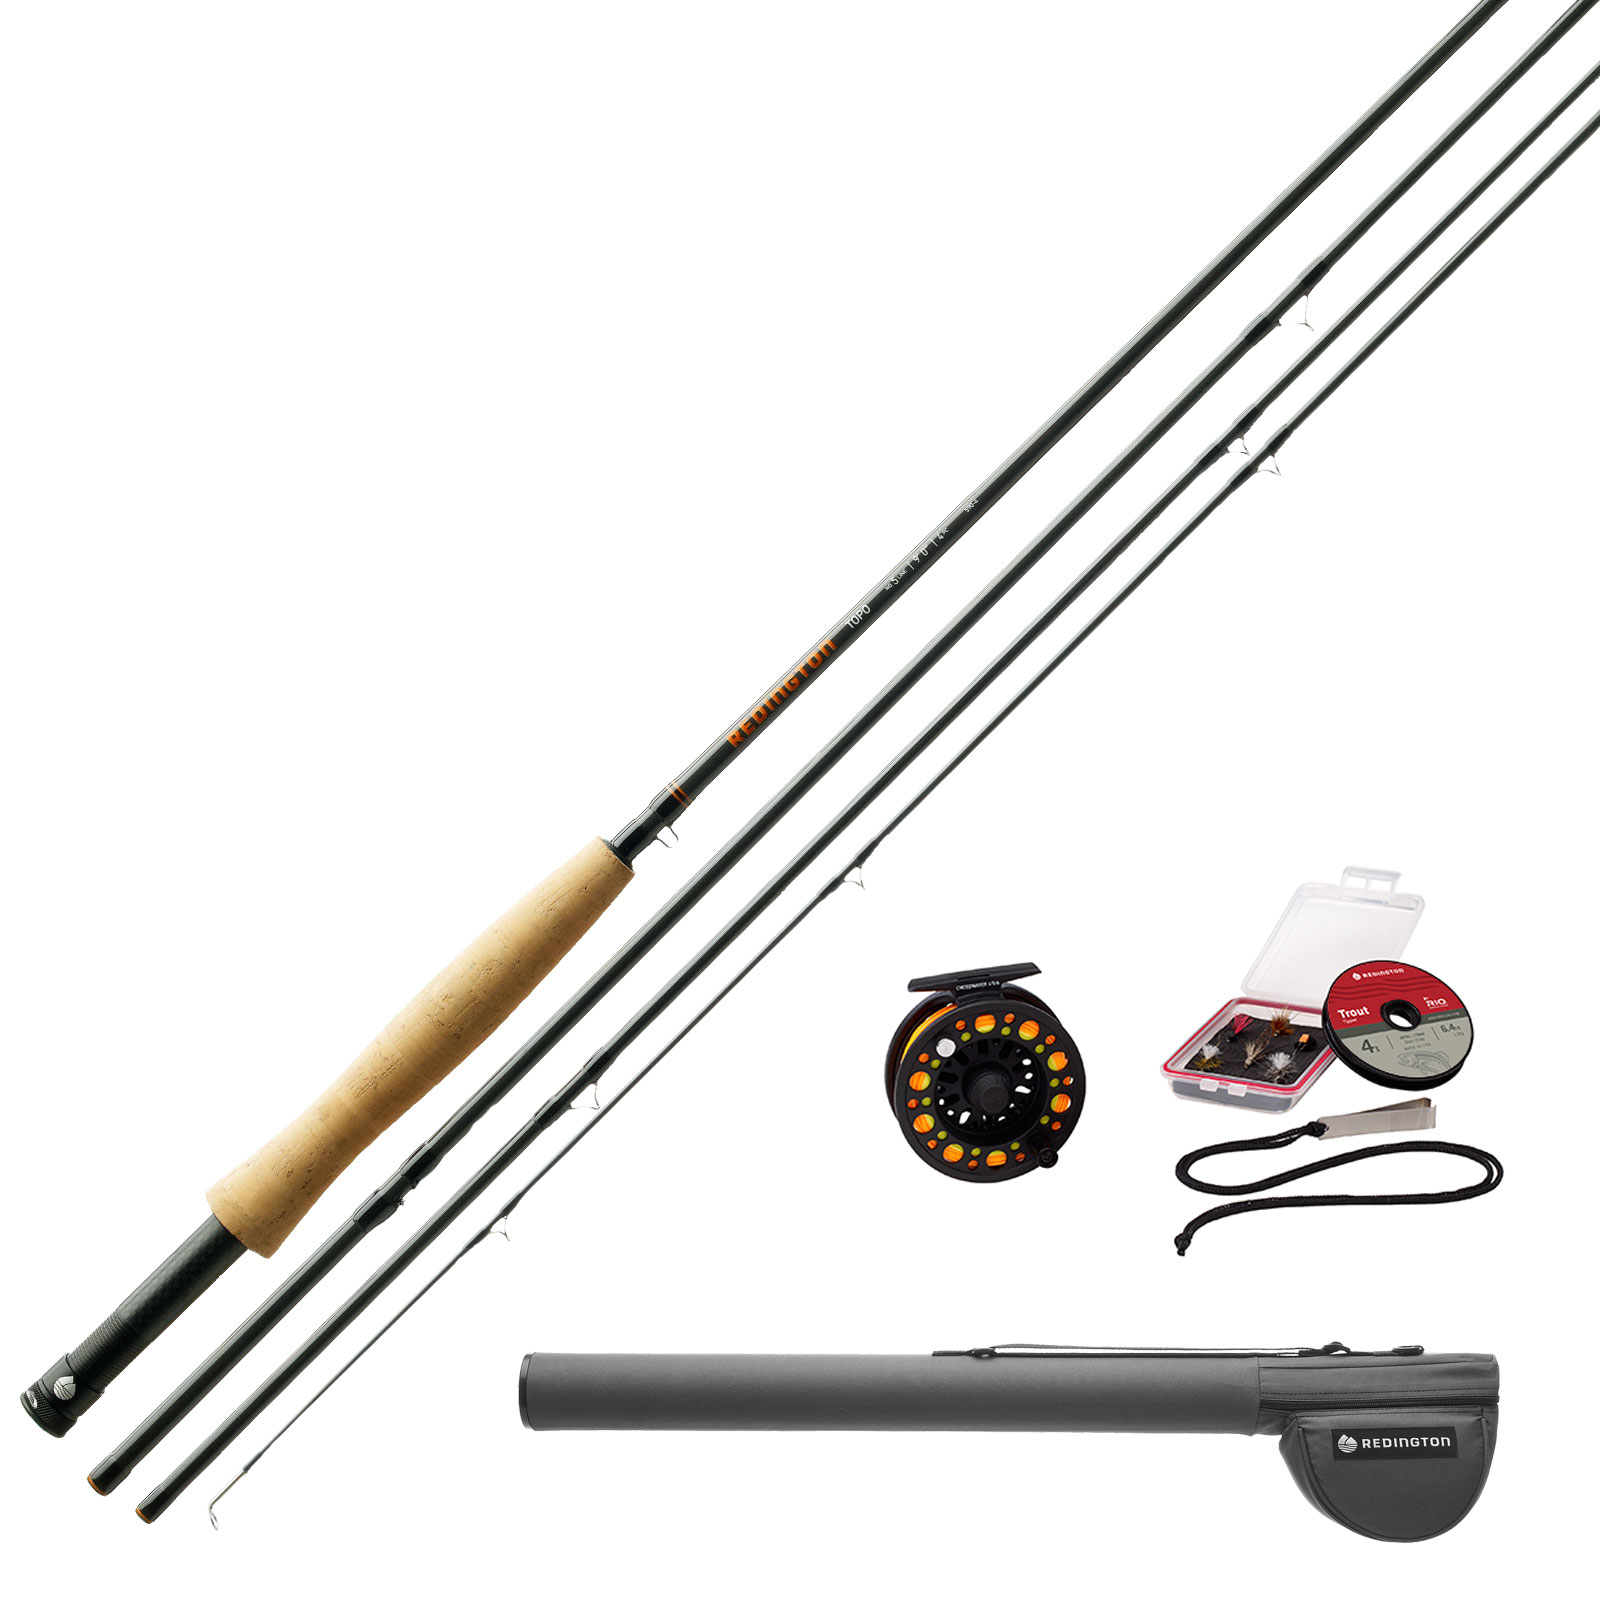 Redington Topo Fly Fishing Outfit, Rod & Reel Kit 9 foot ...